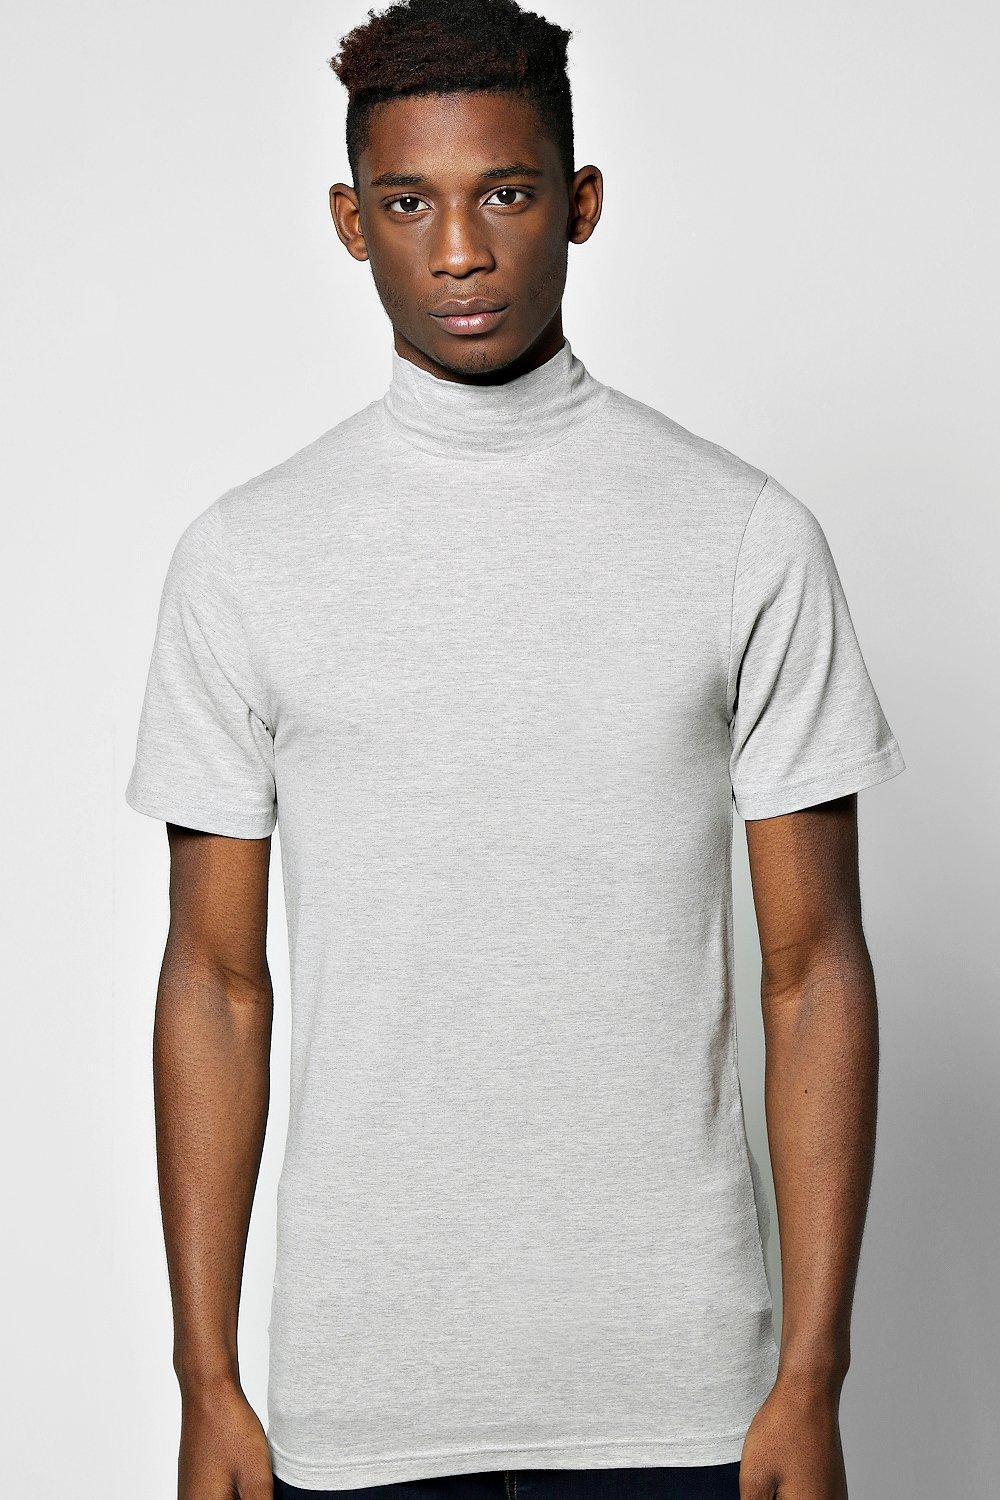 Extreme Muscle Fit Turtle Neck TShirt